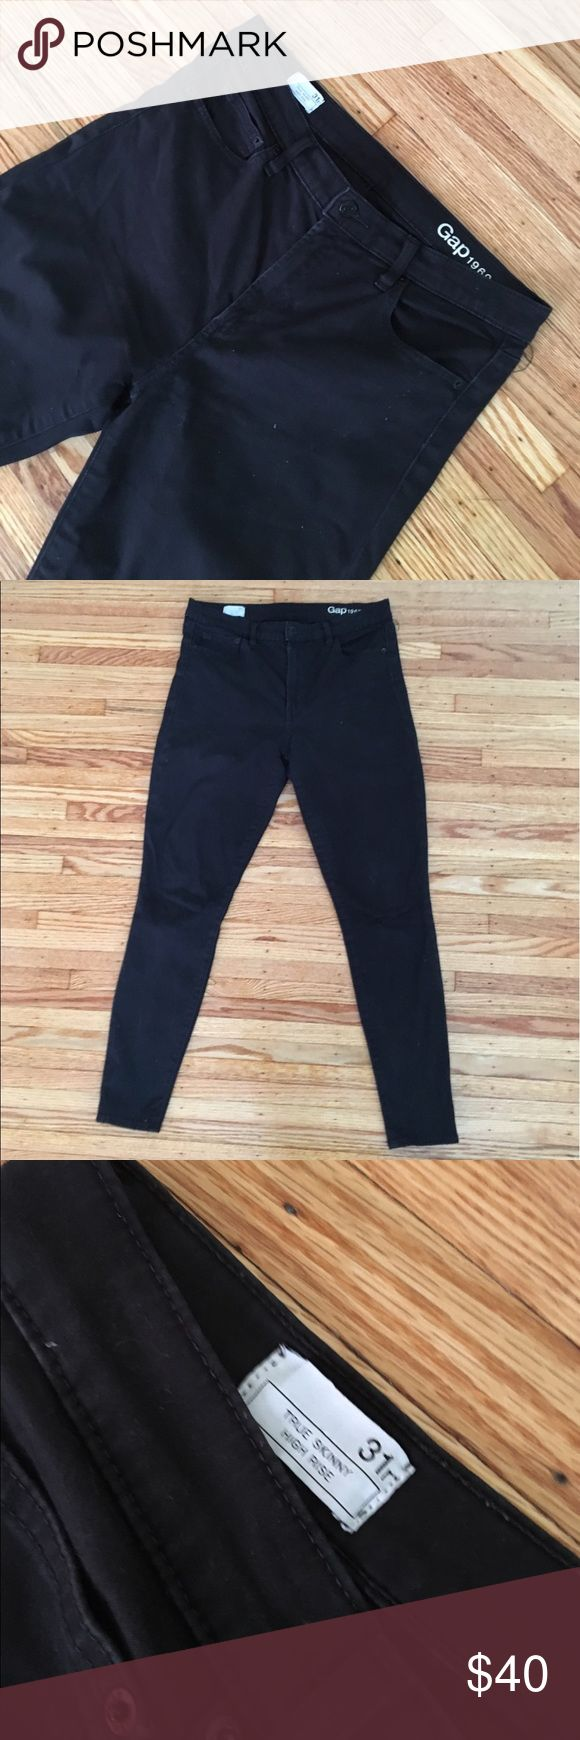 Black legging Jean GAP size 31 Great basic legging jeans by GAP. Women's size 31. Super skinny and high rise! These fit me great and I am usually a 31-32 (12-14) in pants. They look great cuffed with sneakers or with booties and a nice tunic. Great all seasons staple. GAP Pants